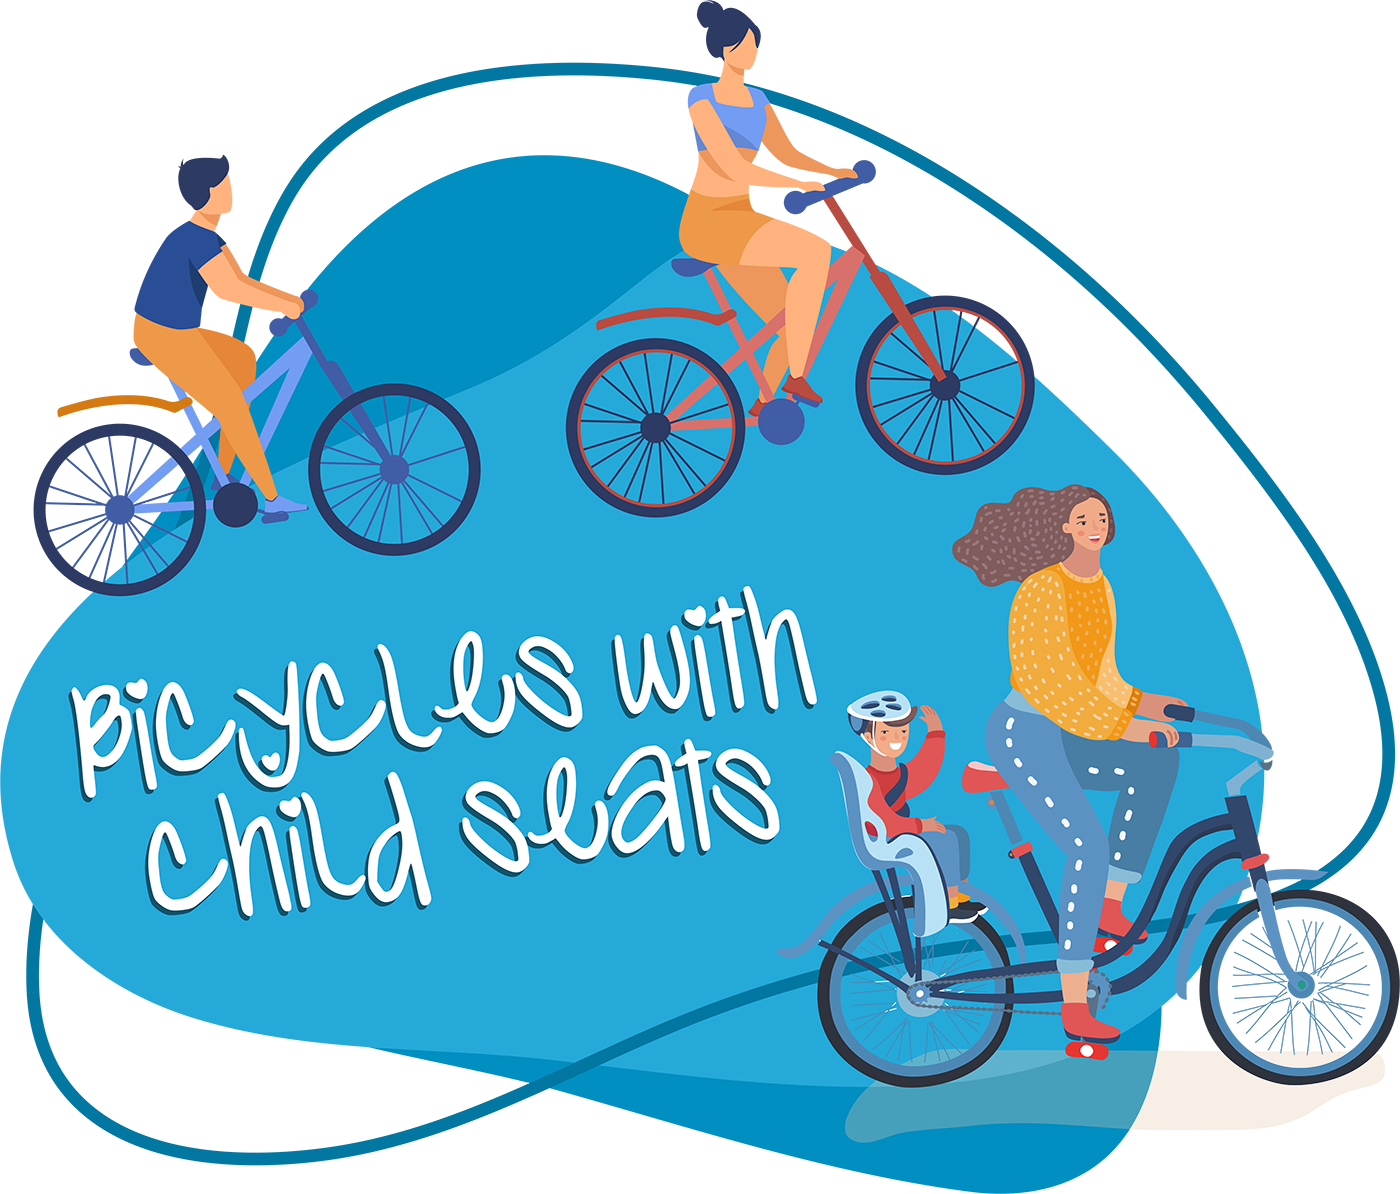 Bicycles with child seats